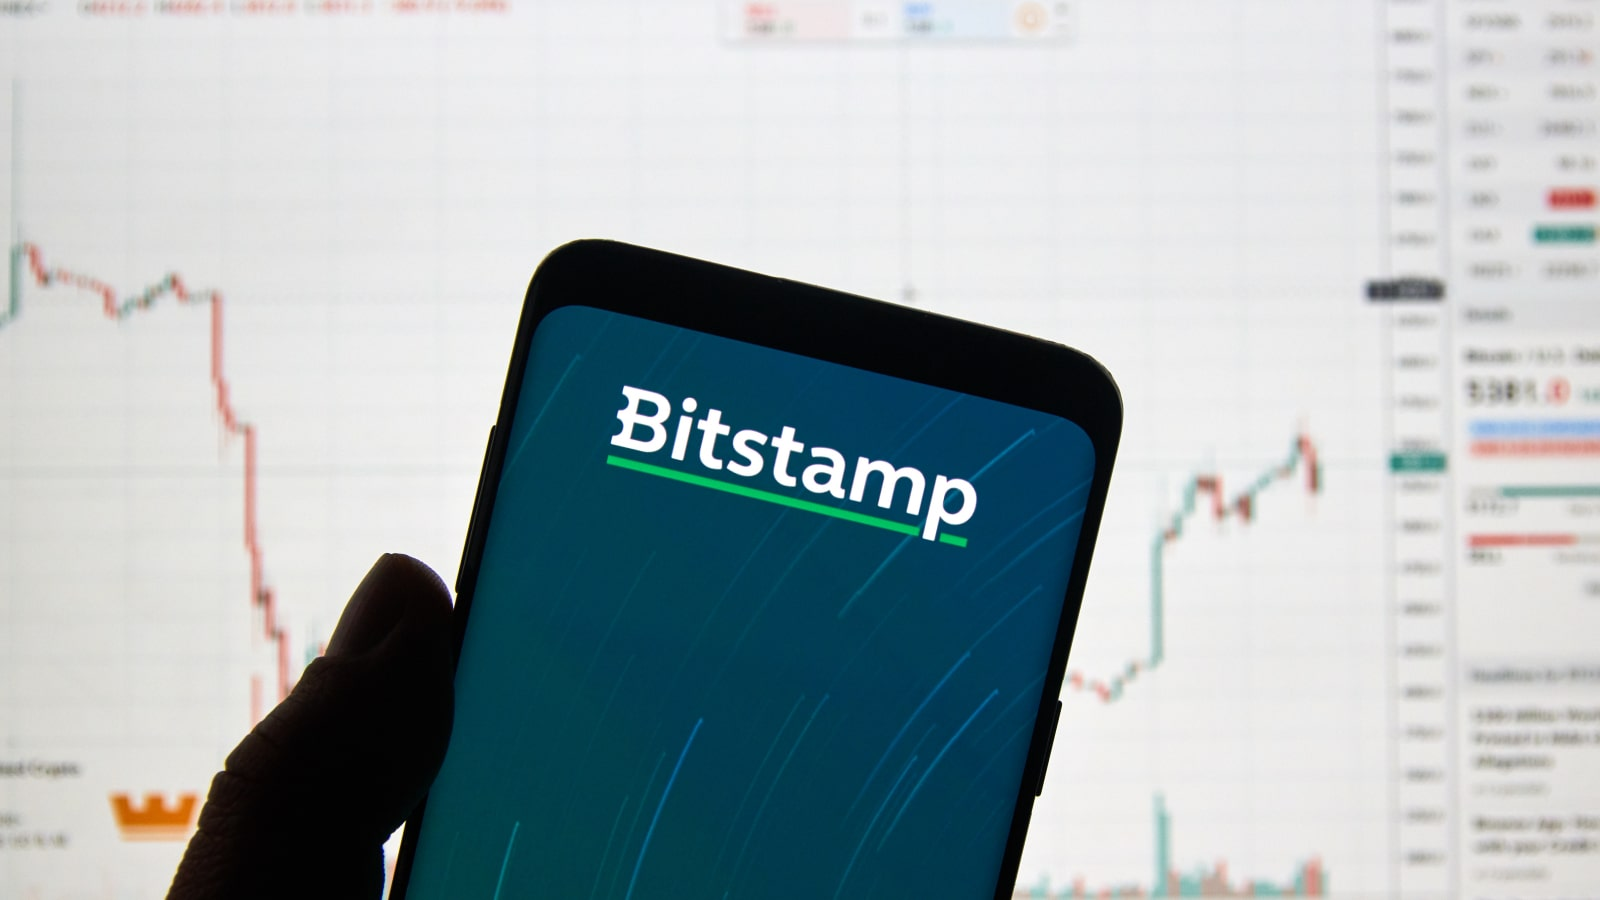 Bitstamp Introduces USDT, COMP And GRT With Zero Fees | CryptoGazette - Cryptocurrency News